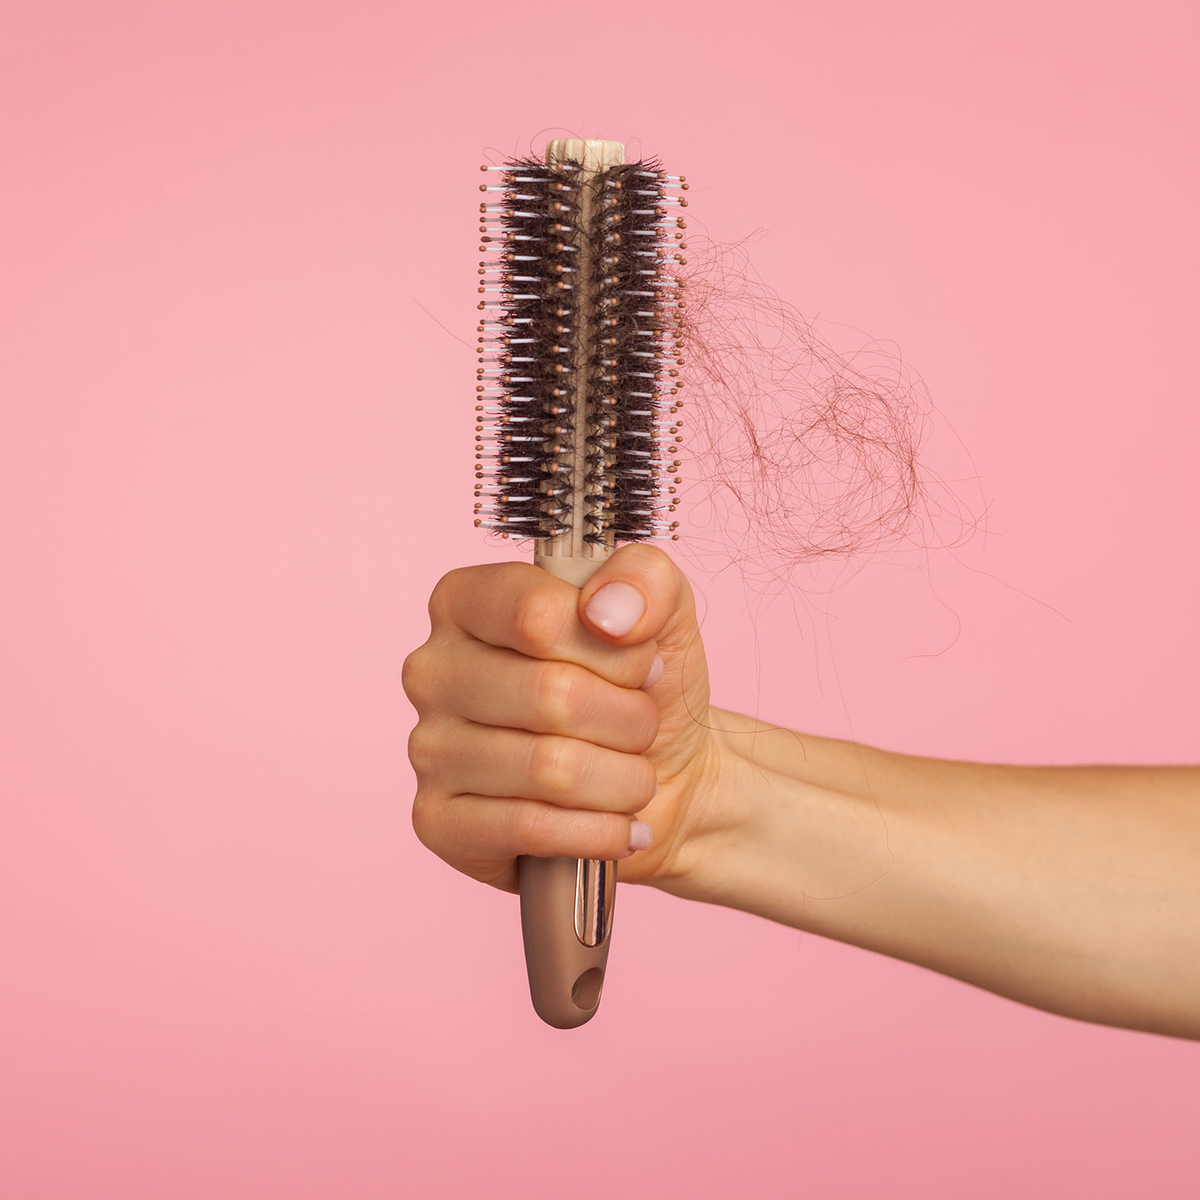 Picture of hand holding hair brush